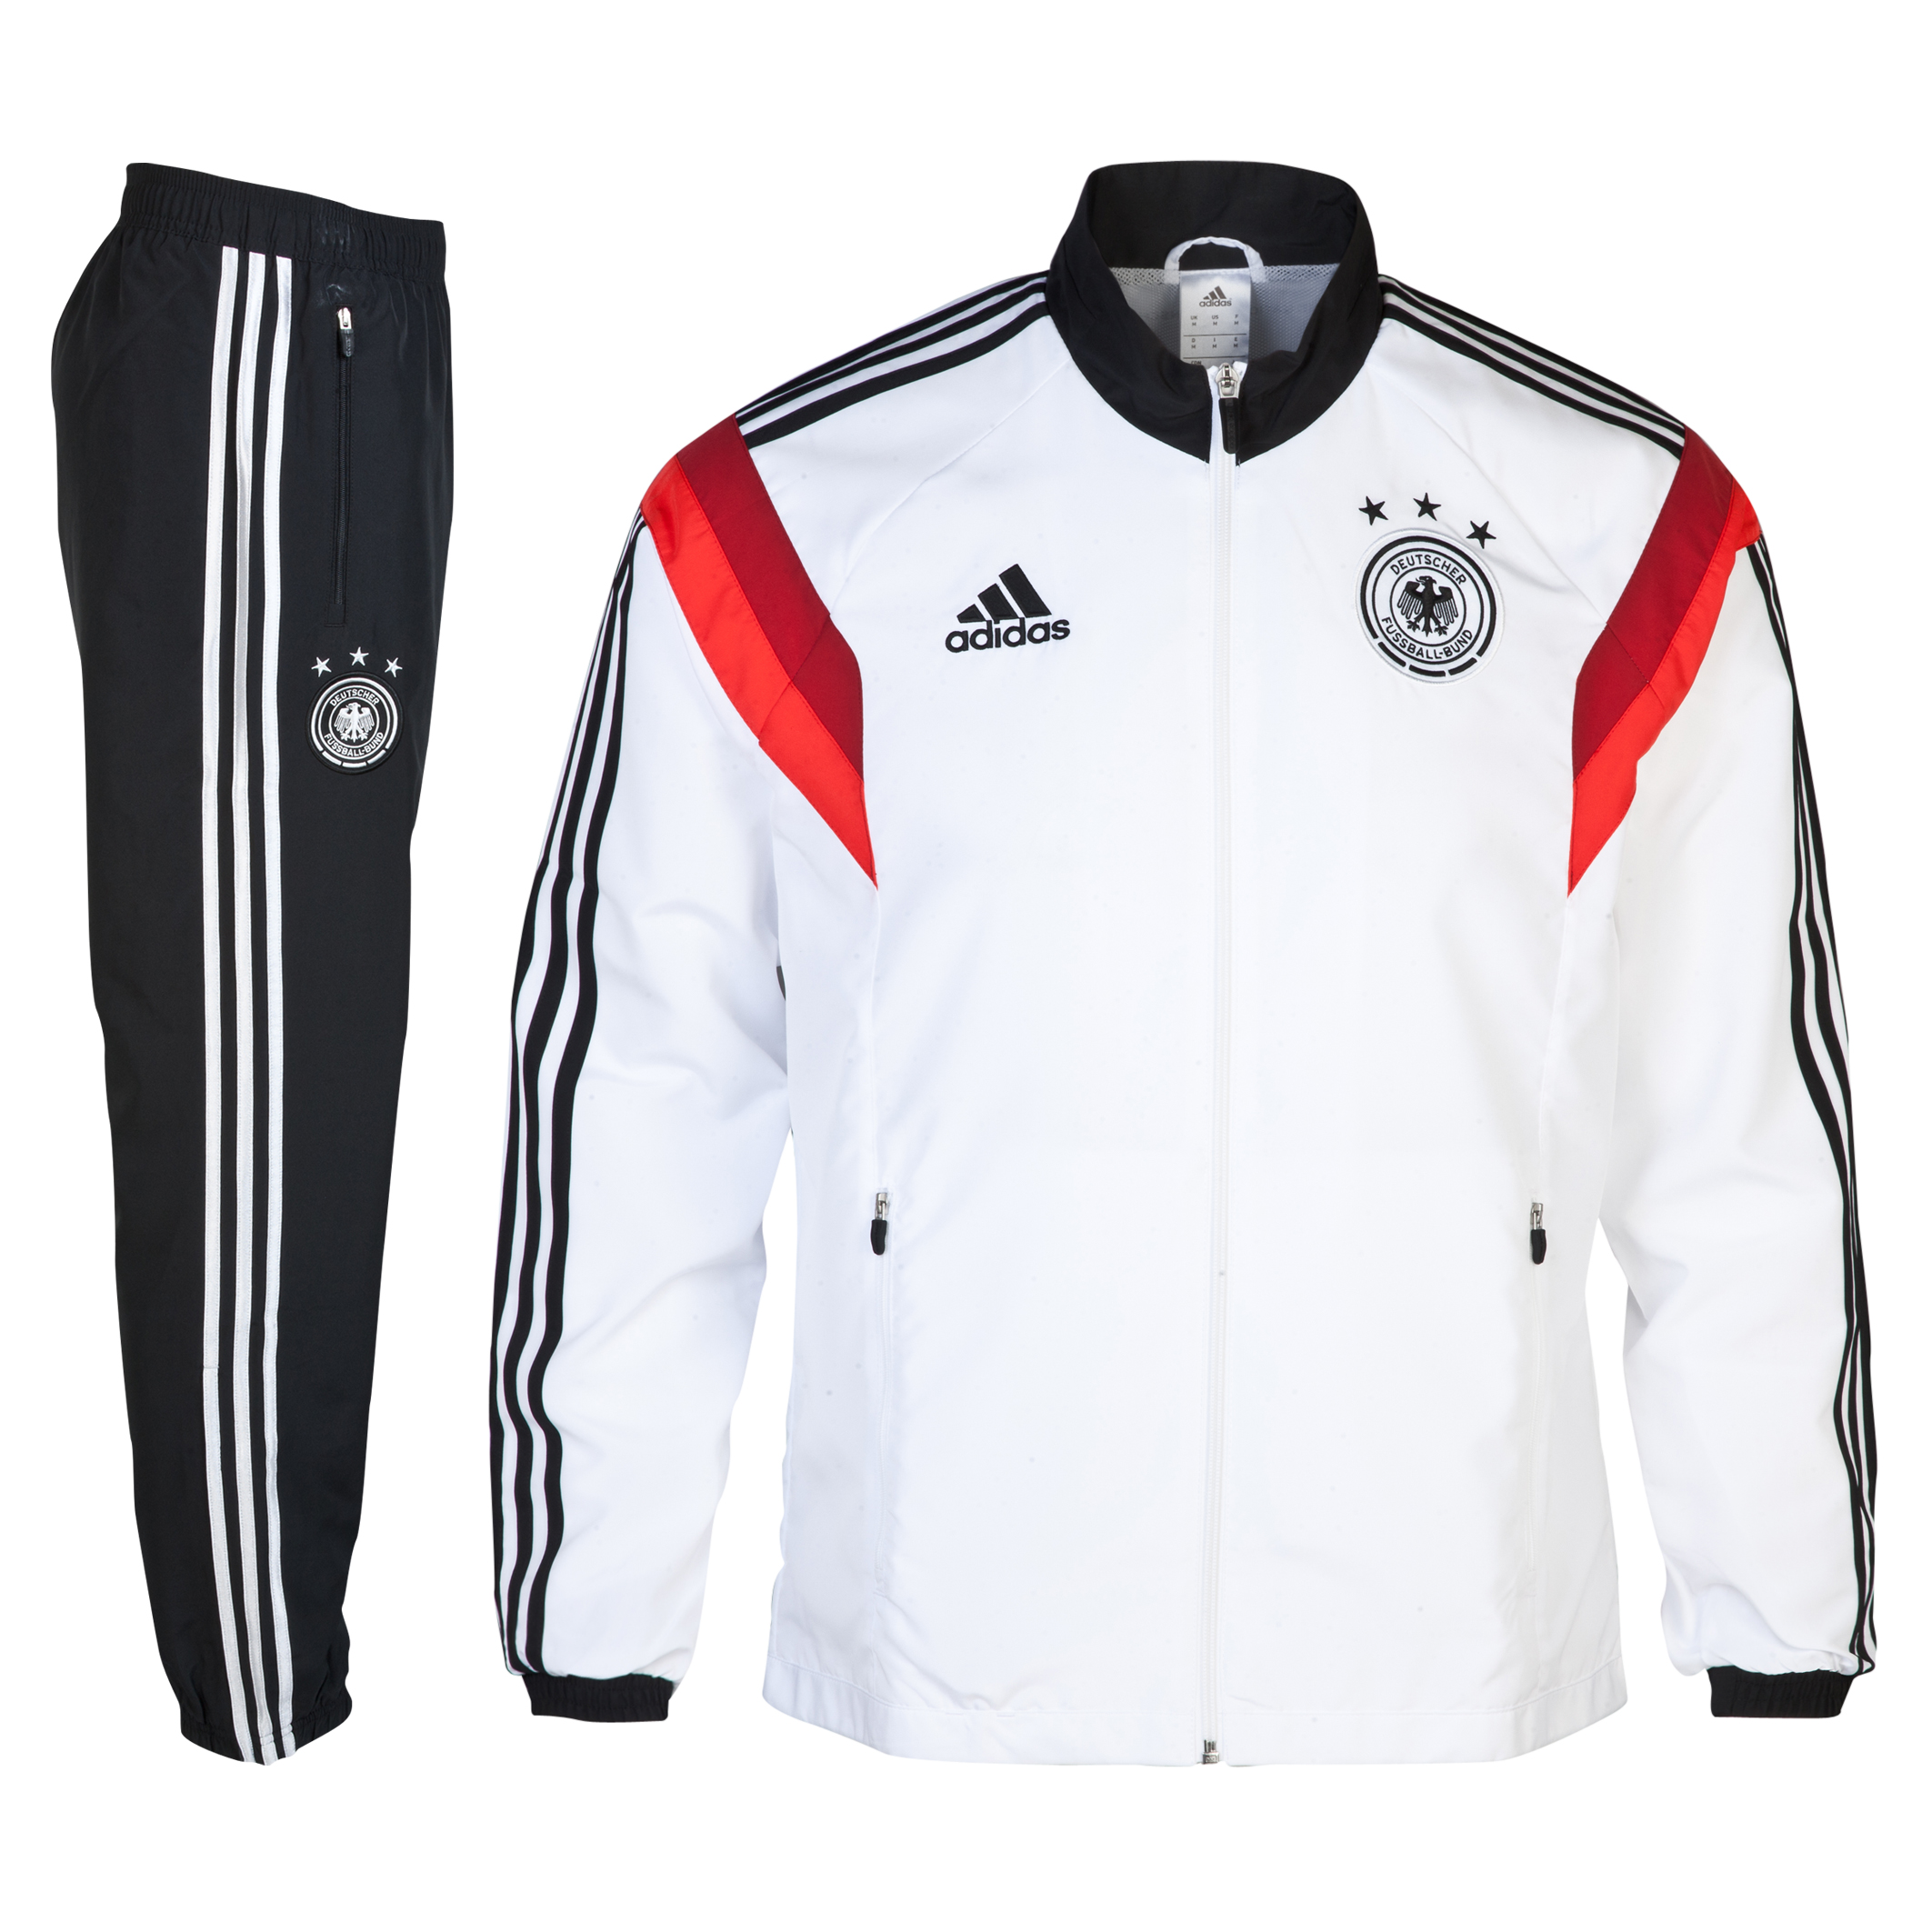 Germany Presentation Suit - White/Black White